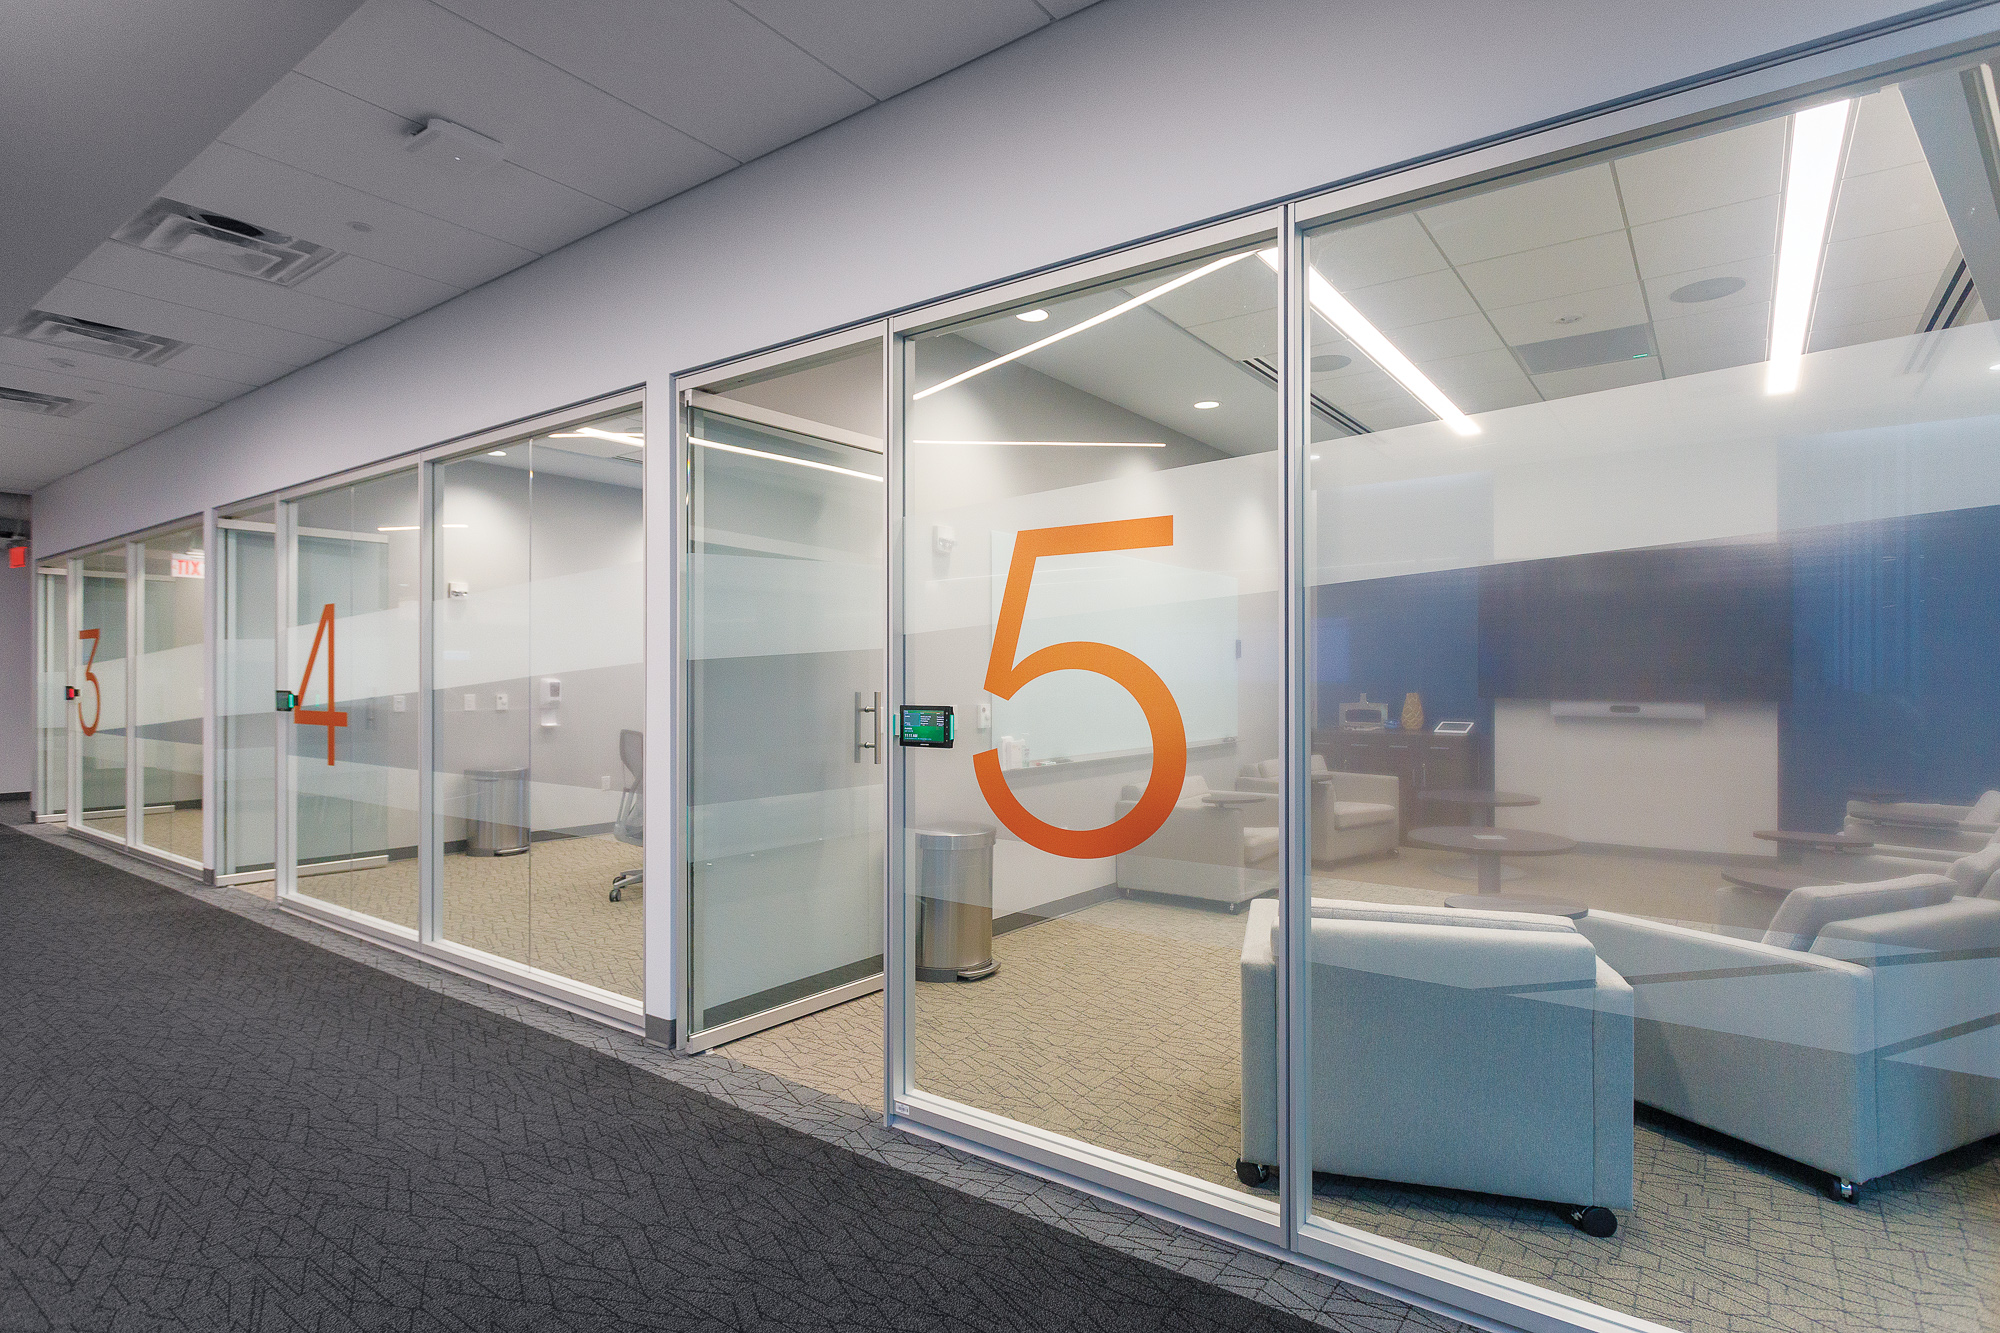 HCA Building 4_Environmental Branding_Commercial Window Film_Rooms 3 4 5__MG_1910_small 2000 px.jpg